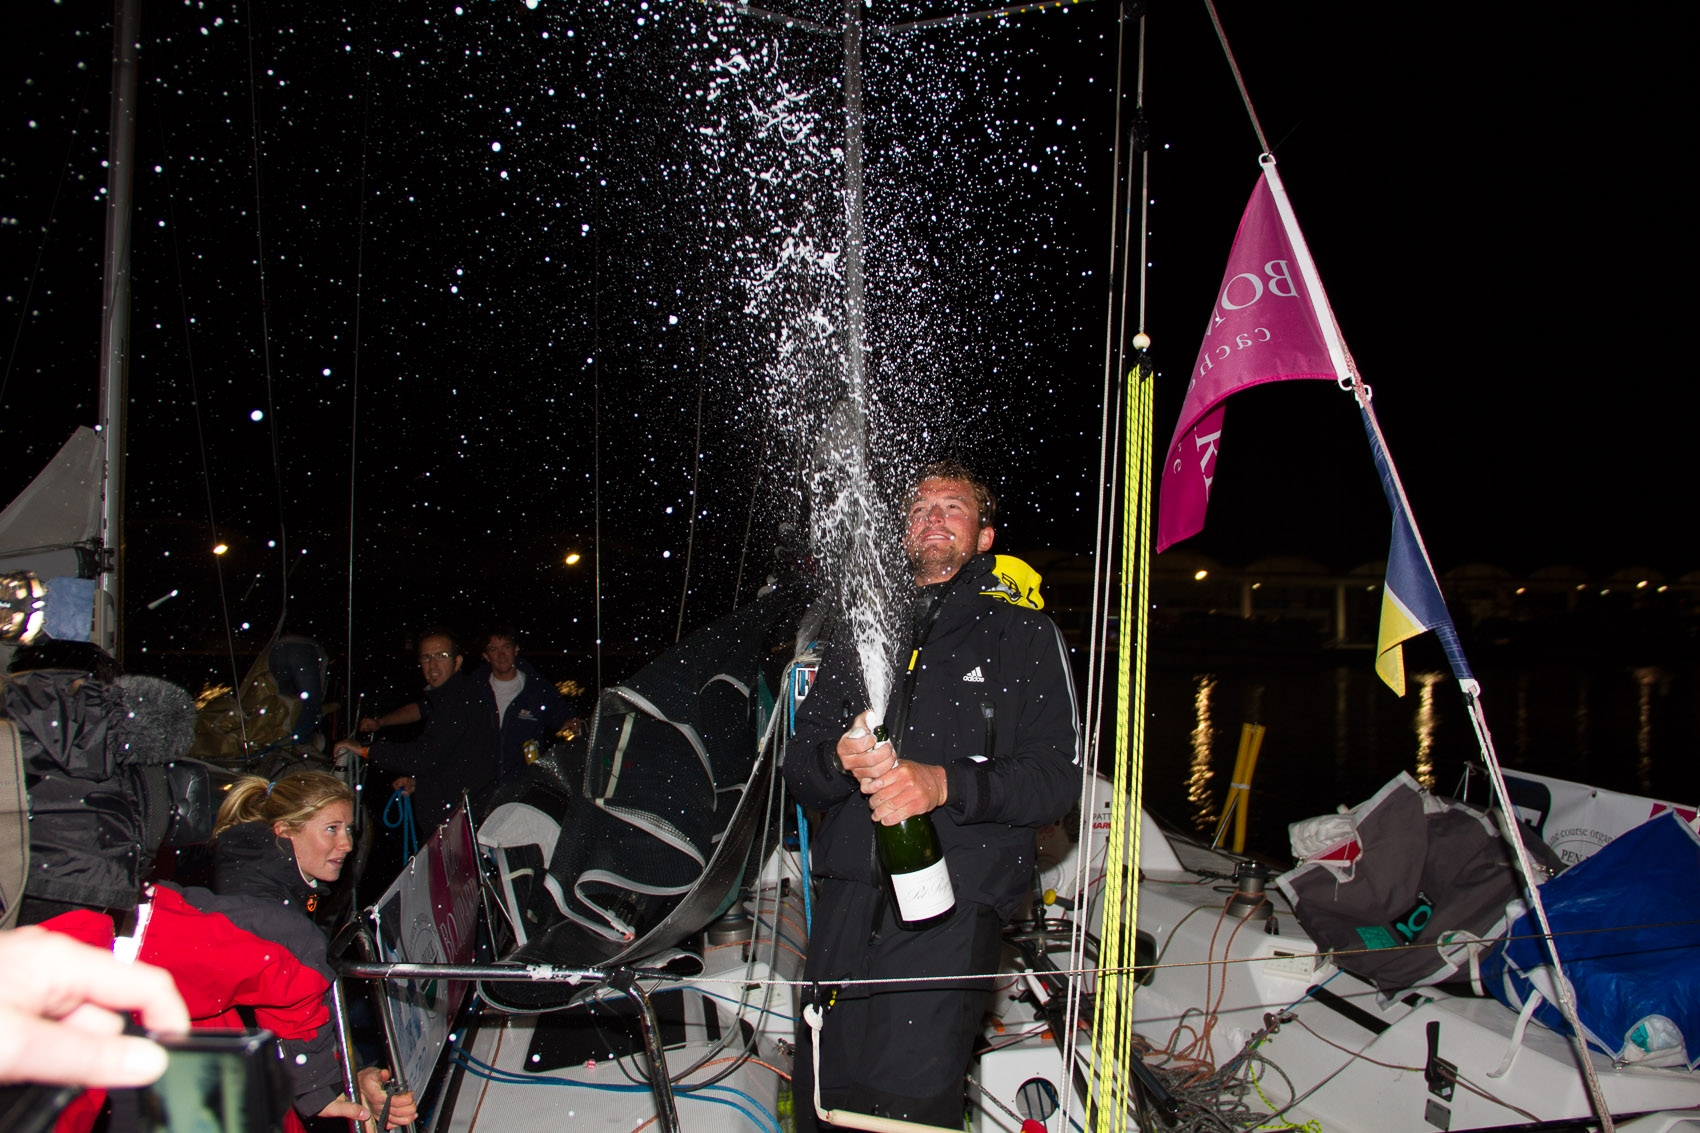 Sam Goodchild celebrates completing the Solitaire du Figaro